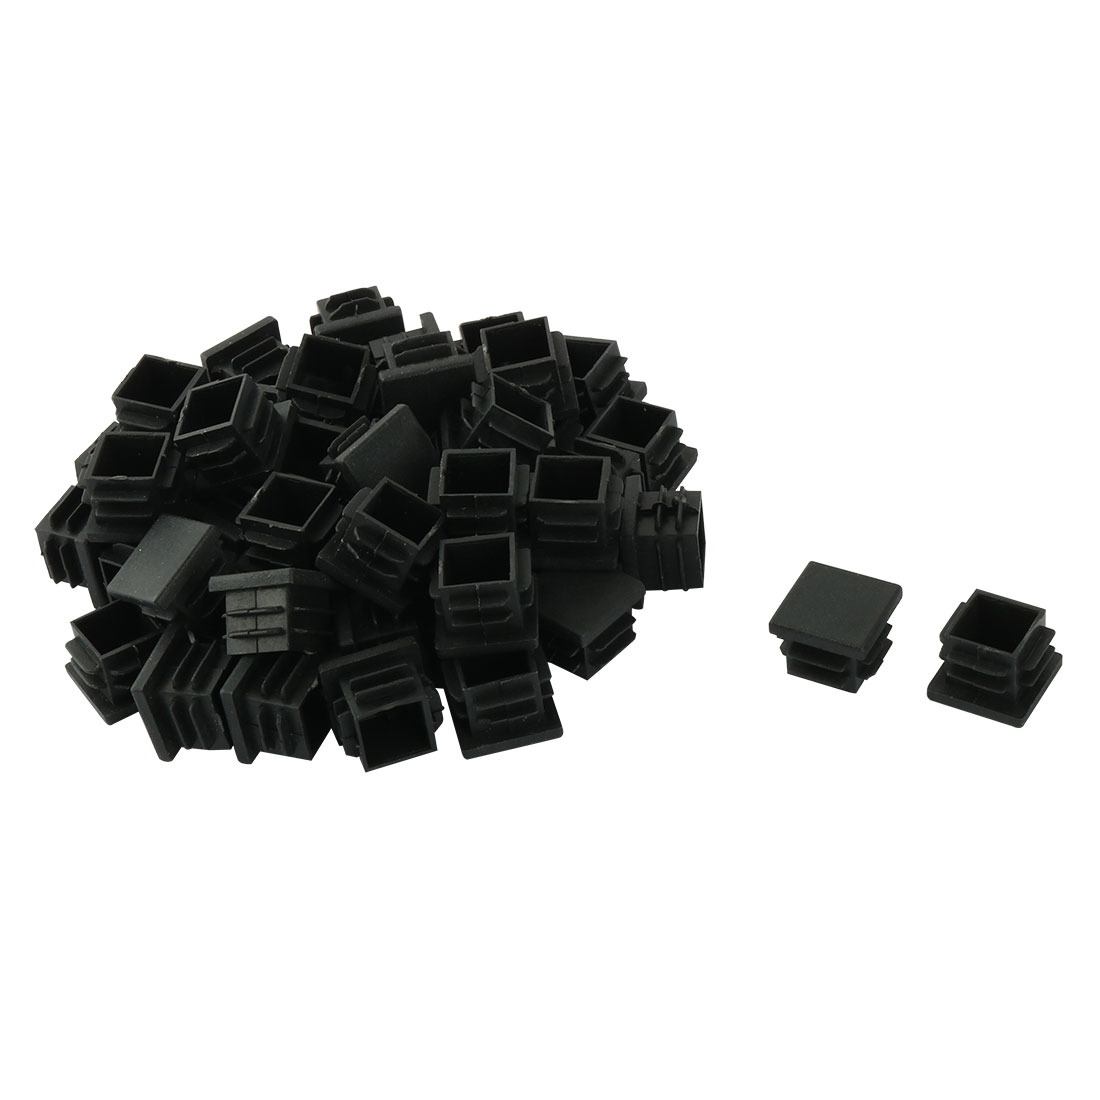 Furniture Table Chair Legs Plastic Square Tube Pipe Insert Cap Cover Black 19 x 19mm 40pcs